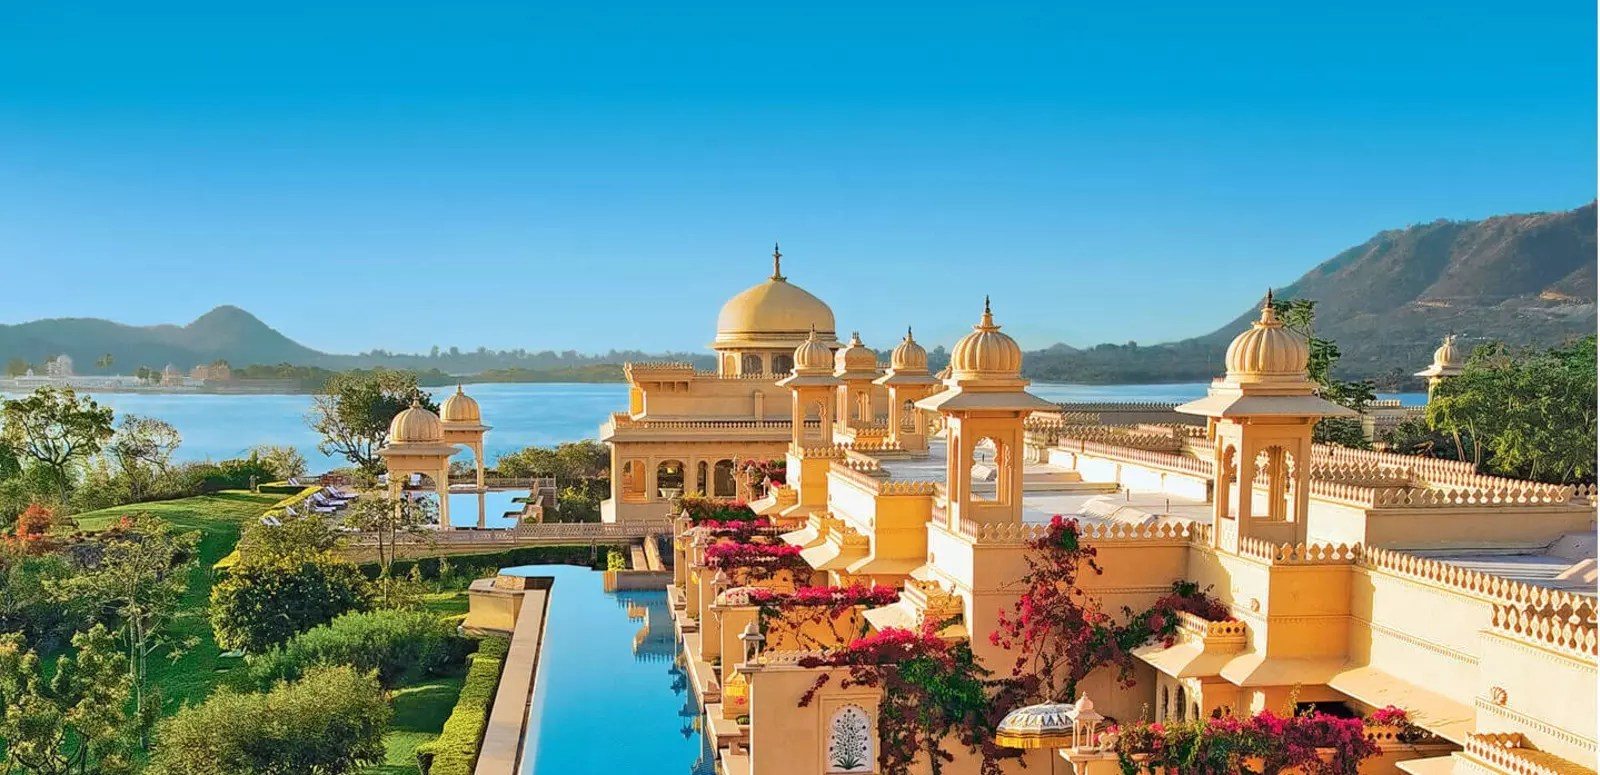 Jacuzzi Pool India Top 25 Luxury Resorts In India 5 Star Resorts In India